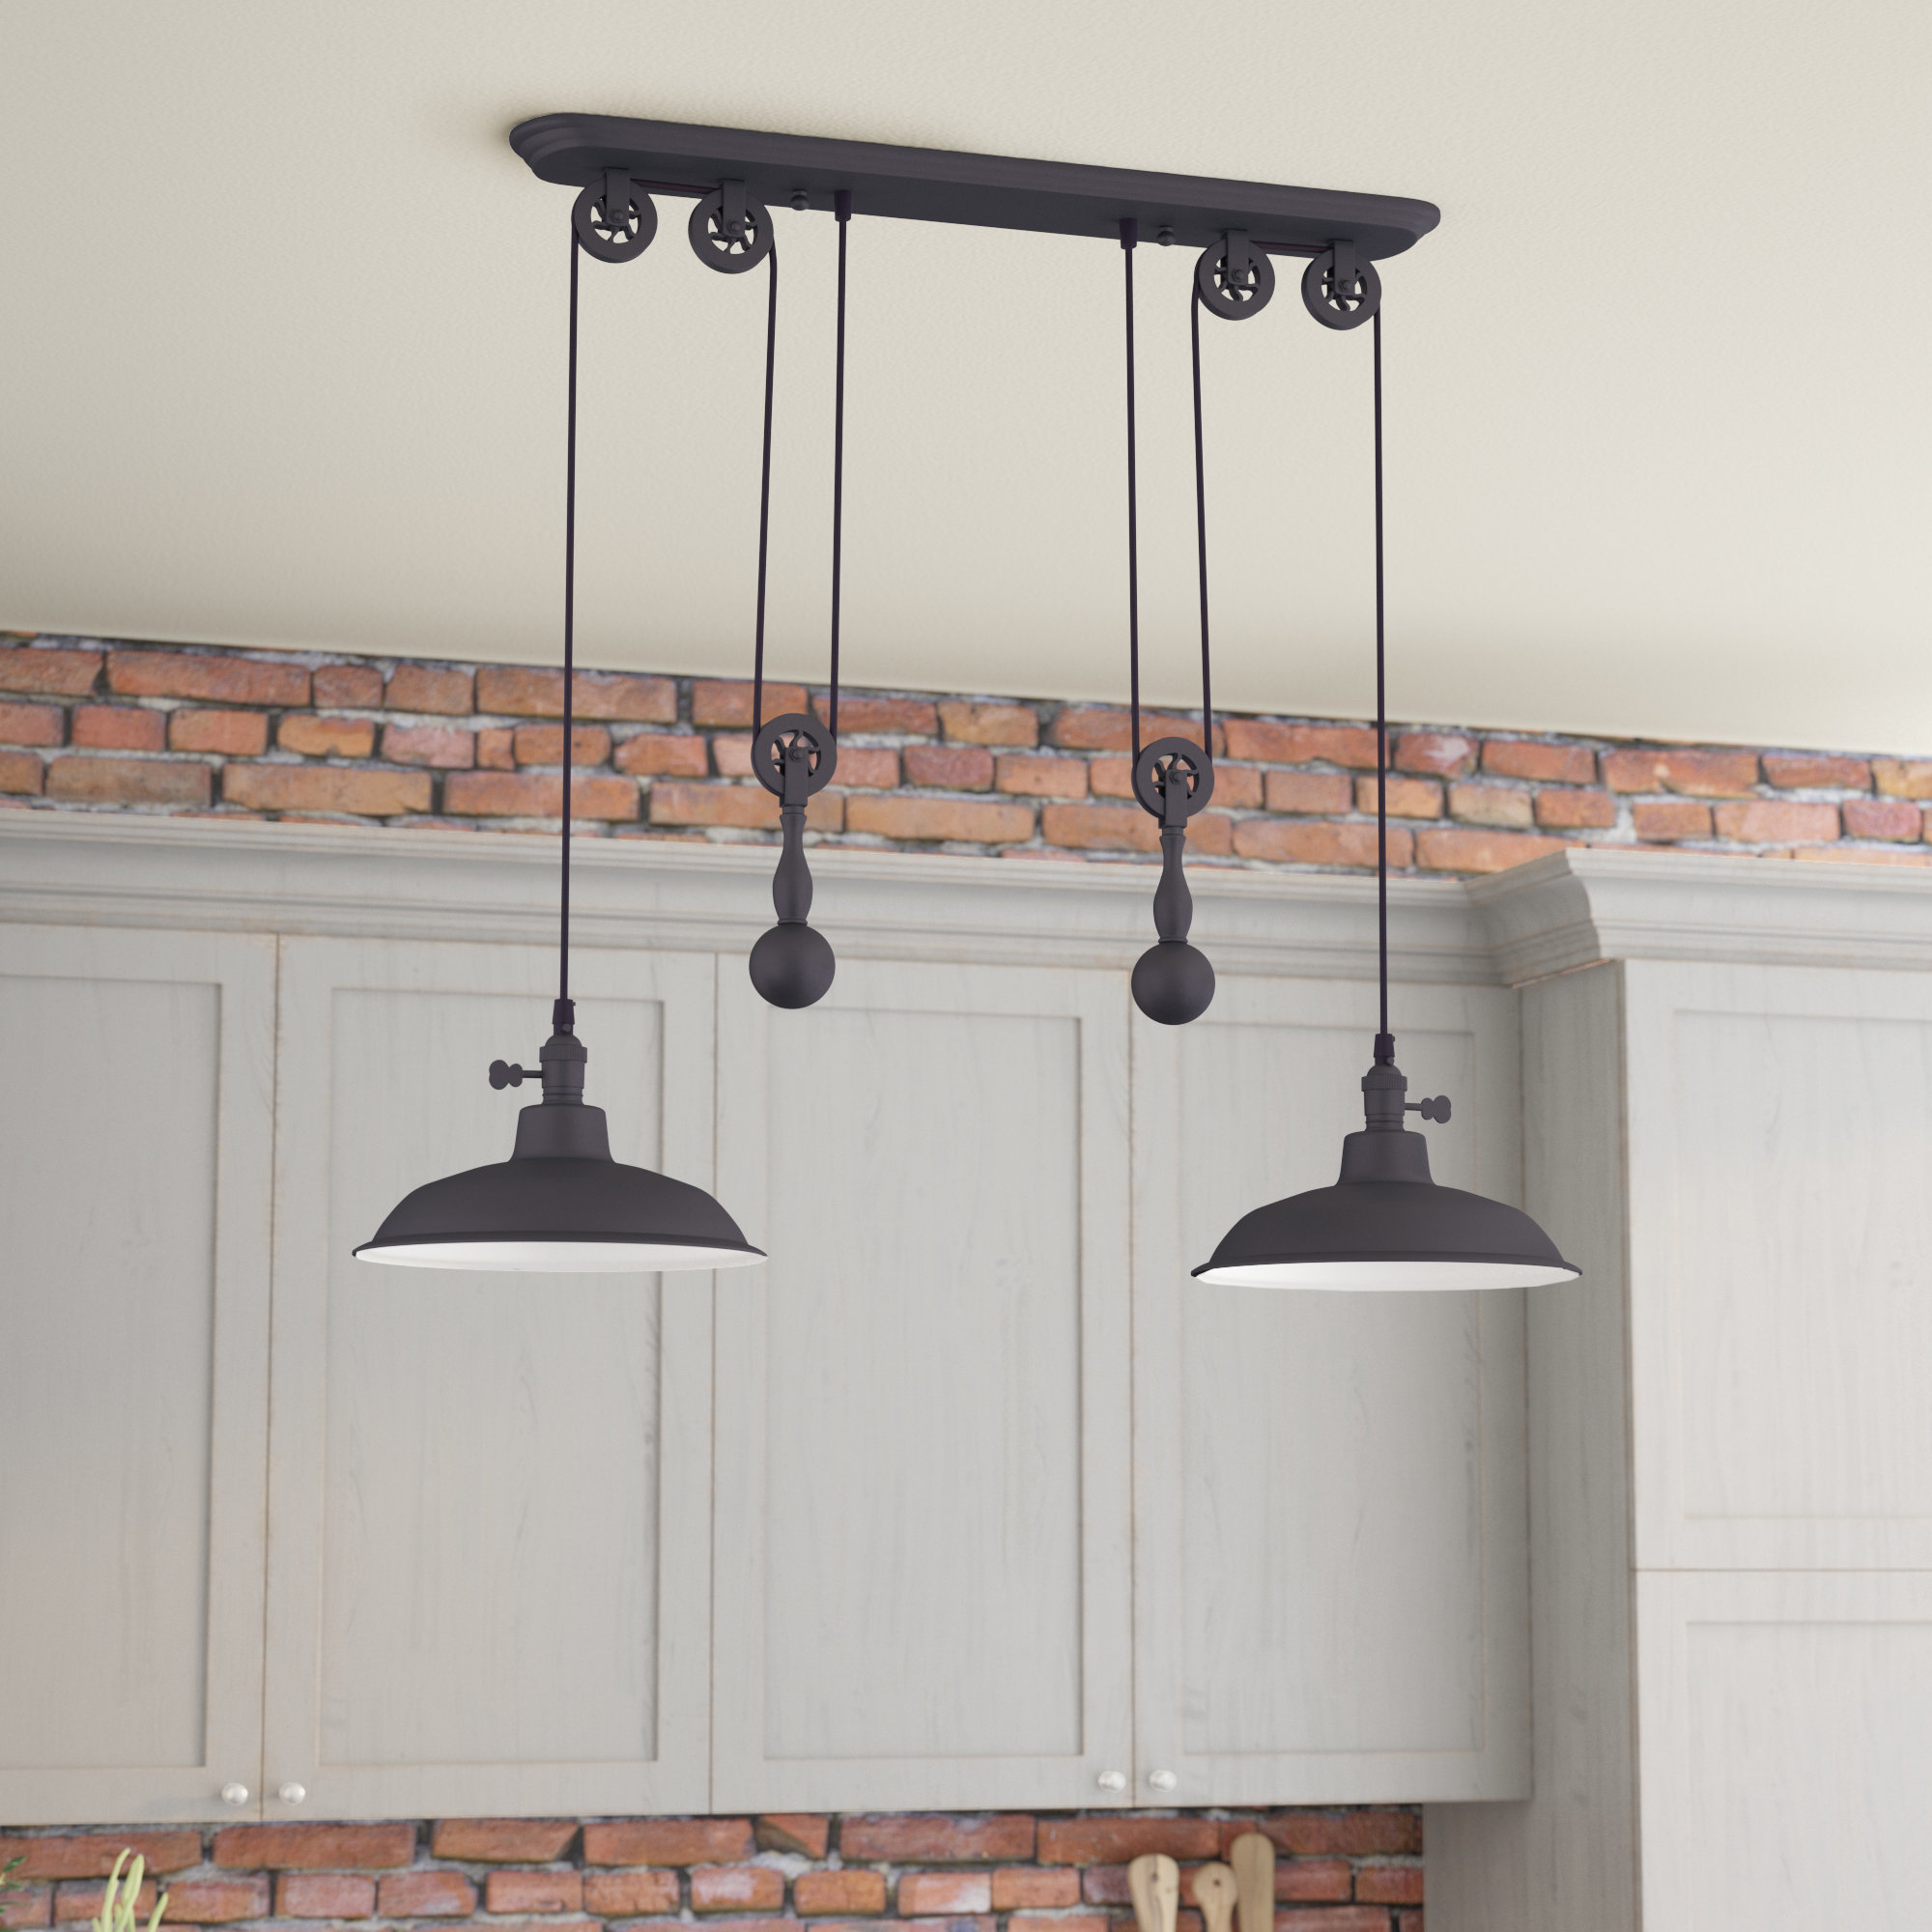 Famous Ariel 2 Light Kitchen Island Dome Pendant With Regard To Ariel 3 Light Kitchen Island Dome Pendants (View 2 of 25)